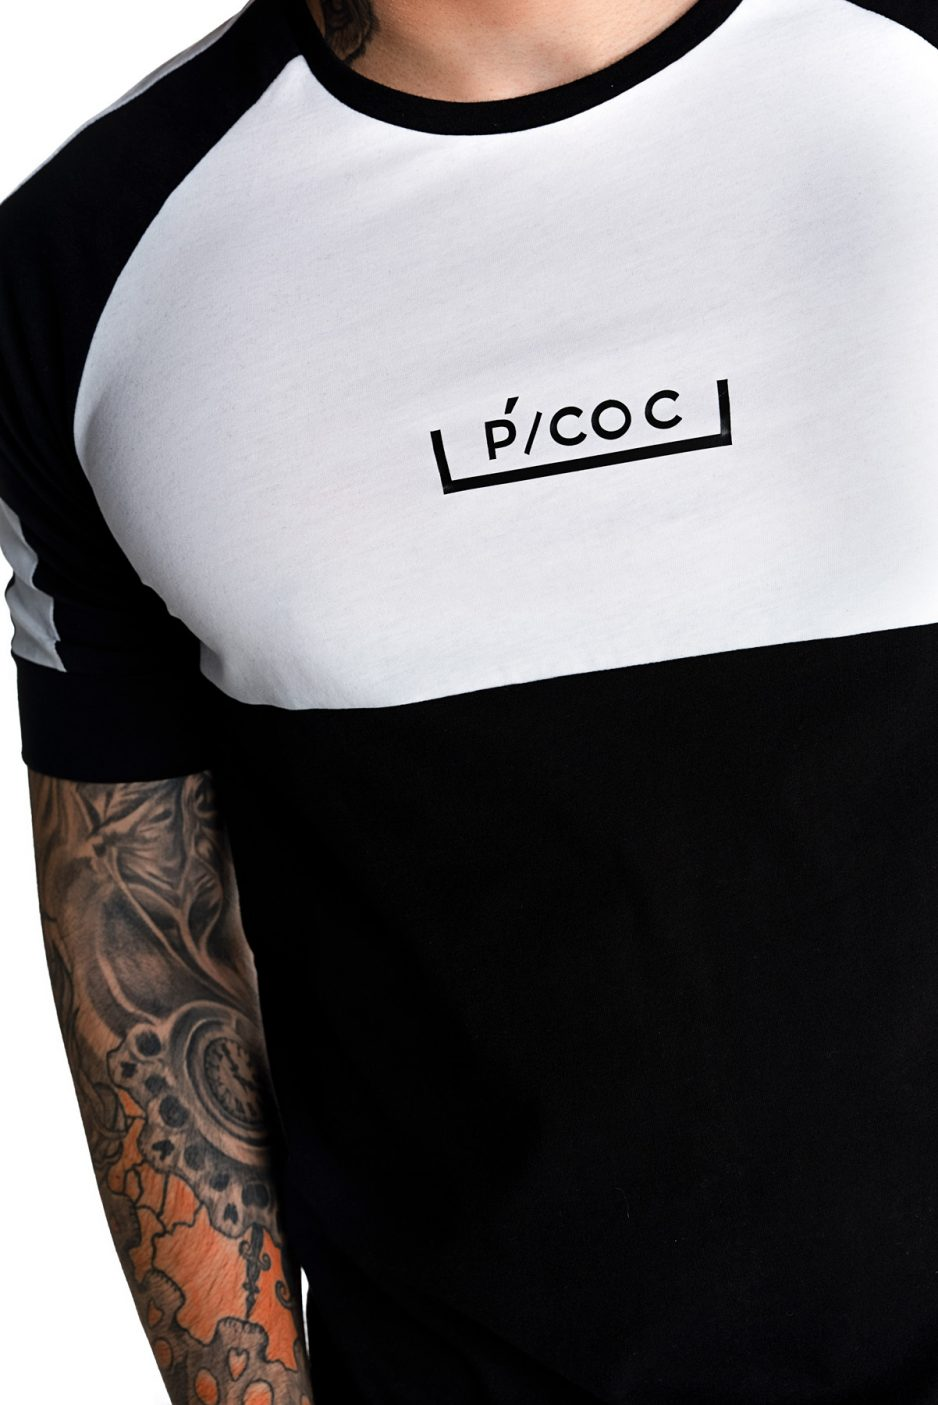 Black and white t-shirt with P/COC logo in front